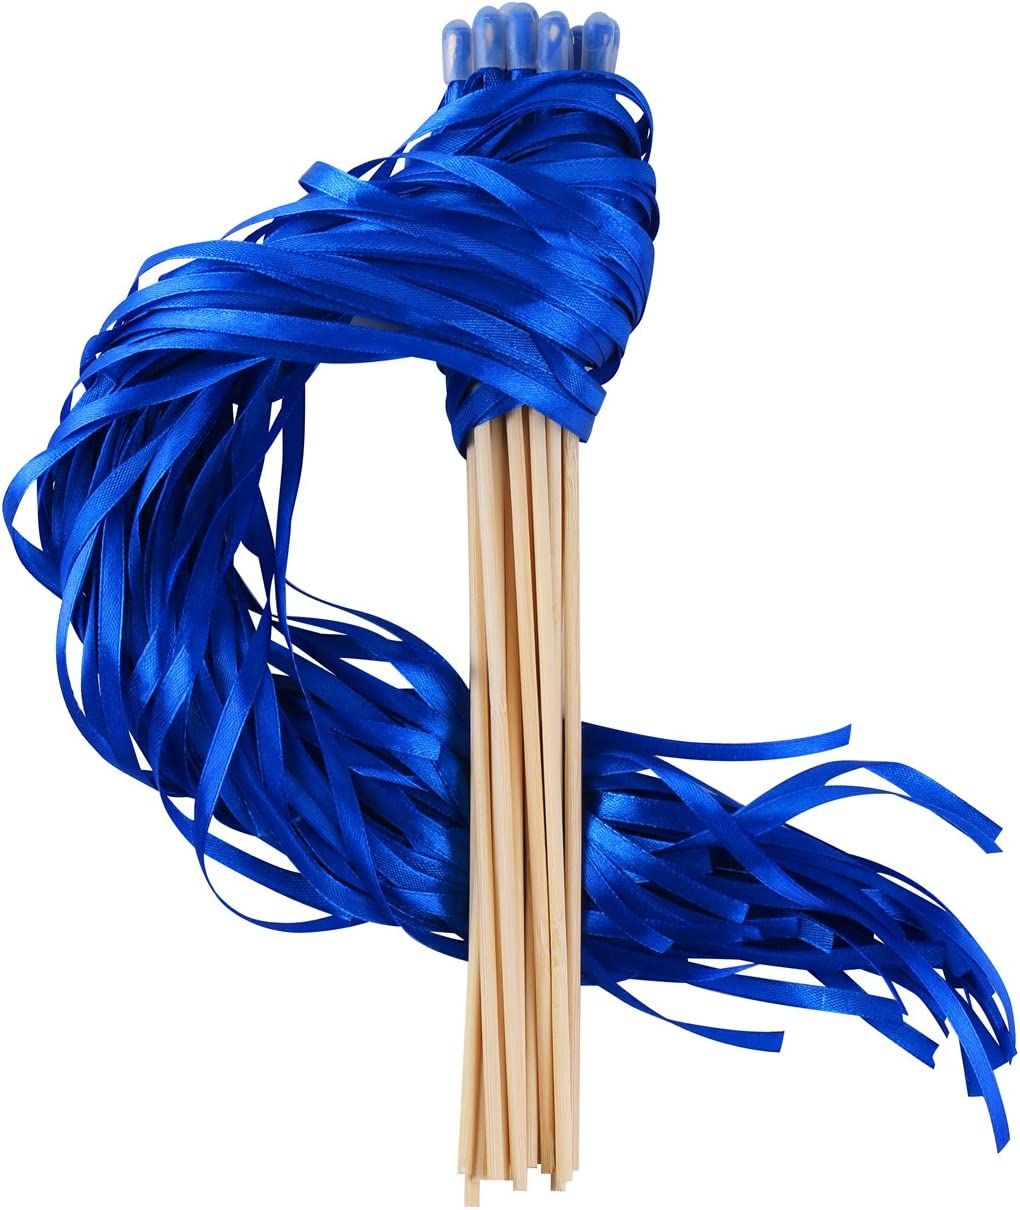 Wishprom Ribbon Wands Sticks Streamers Clearance SALE Limited [Alternative dealer] time for Wedding Party Favor